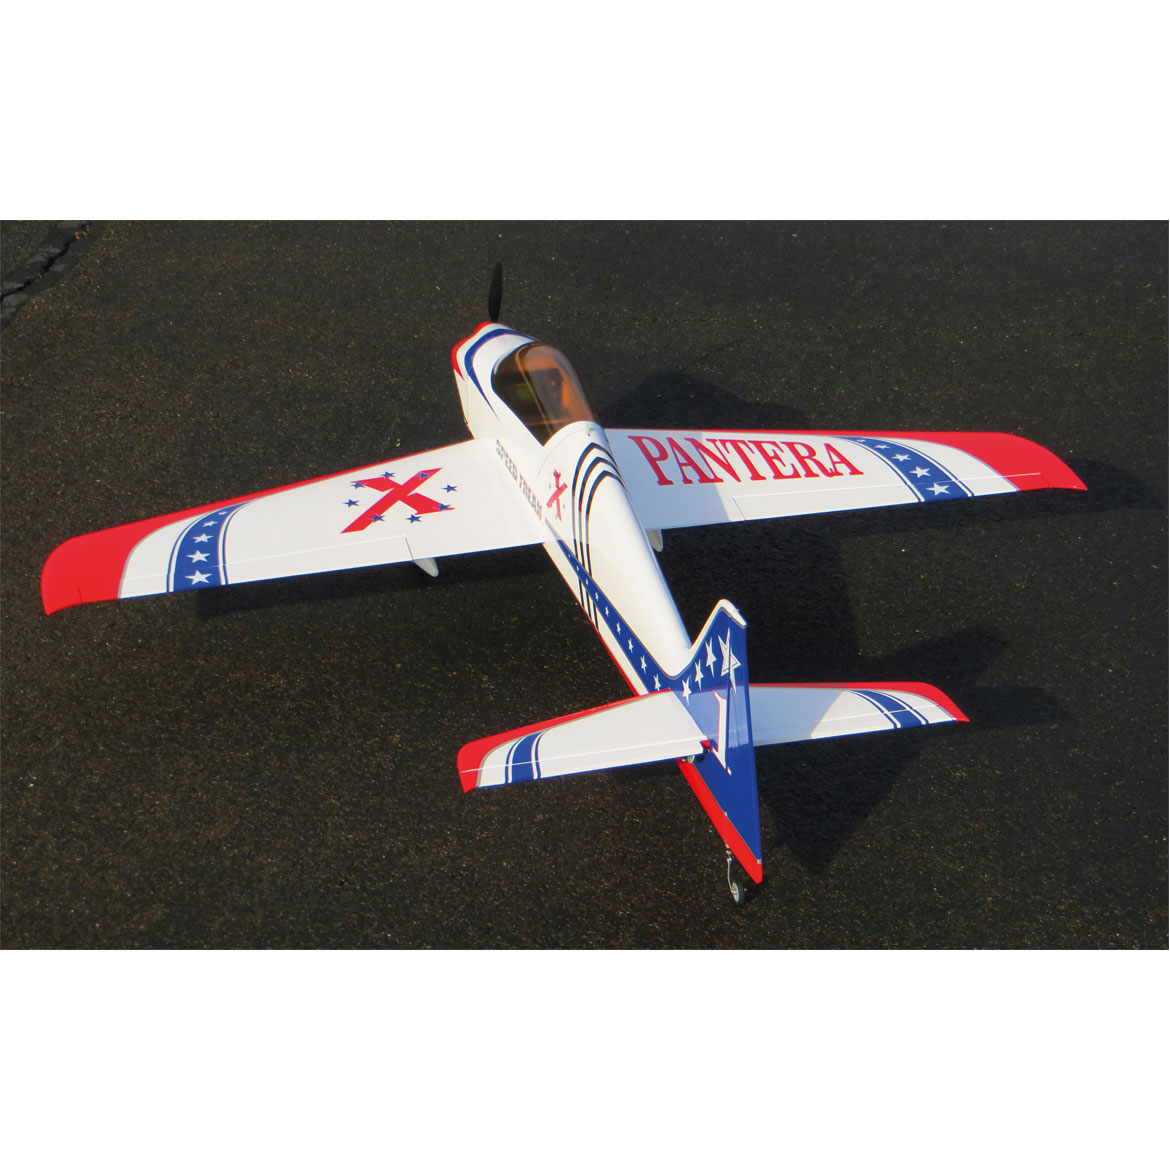 "Extreme Flight Pantera 52""- Red/White - ARF"